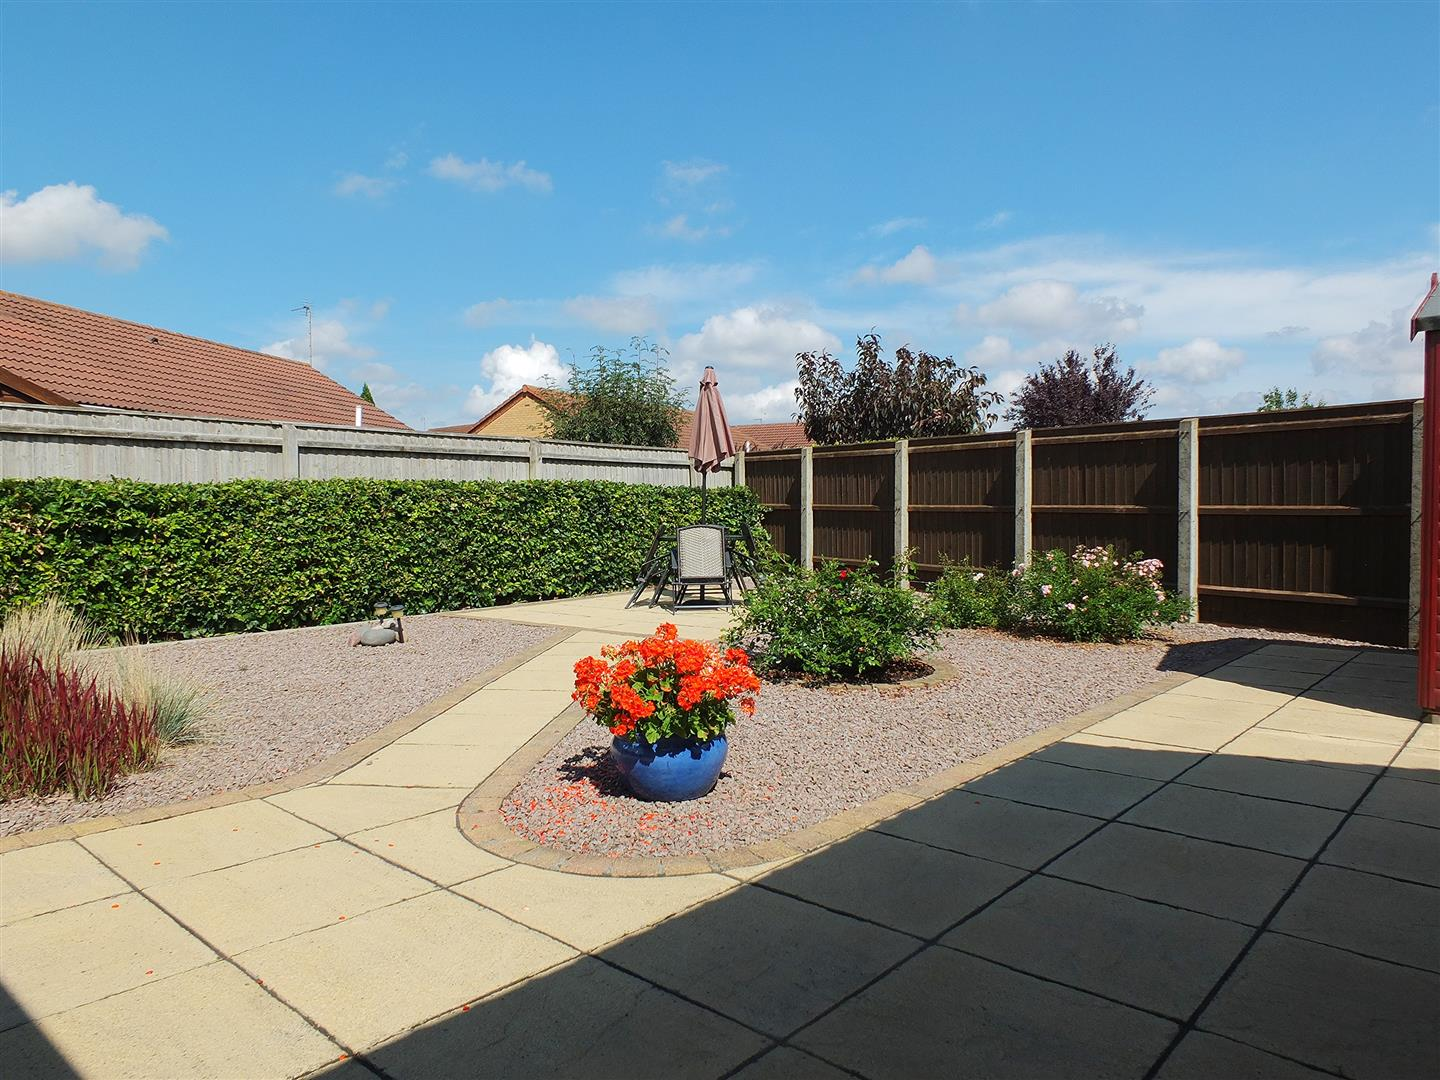 3 bed detached bungalow for sale in Long Sutton Spalding, PE12 9FT  - Property Image 17